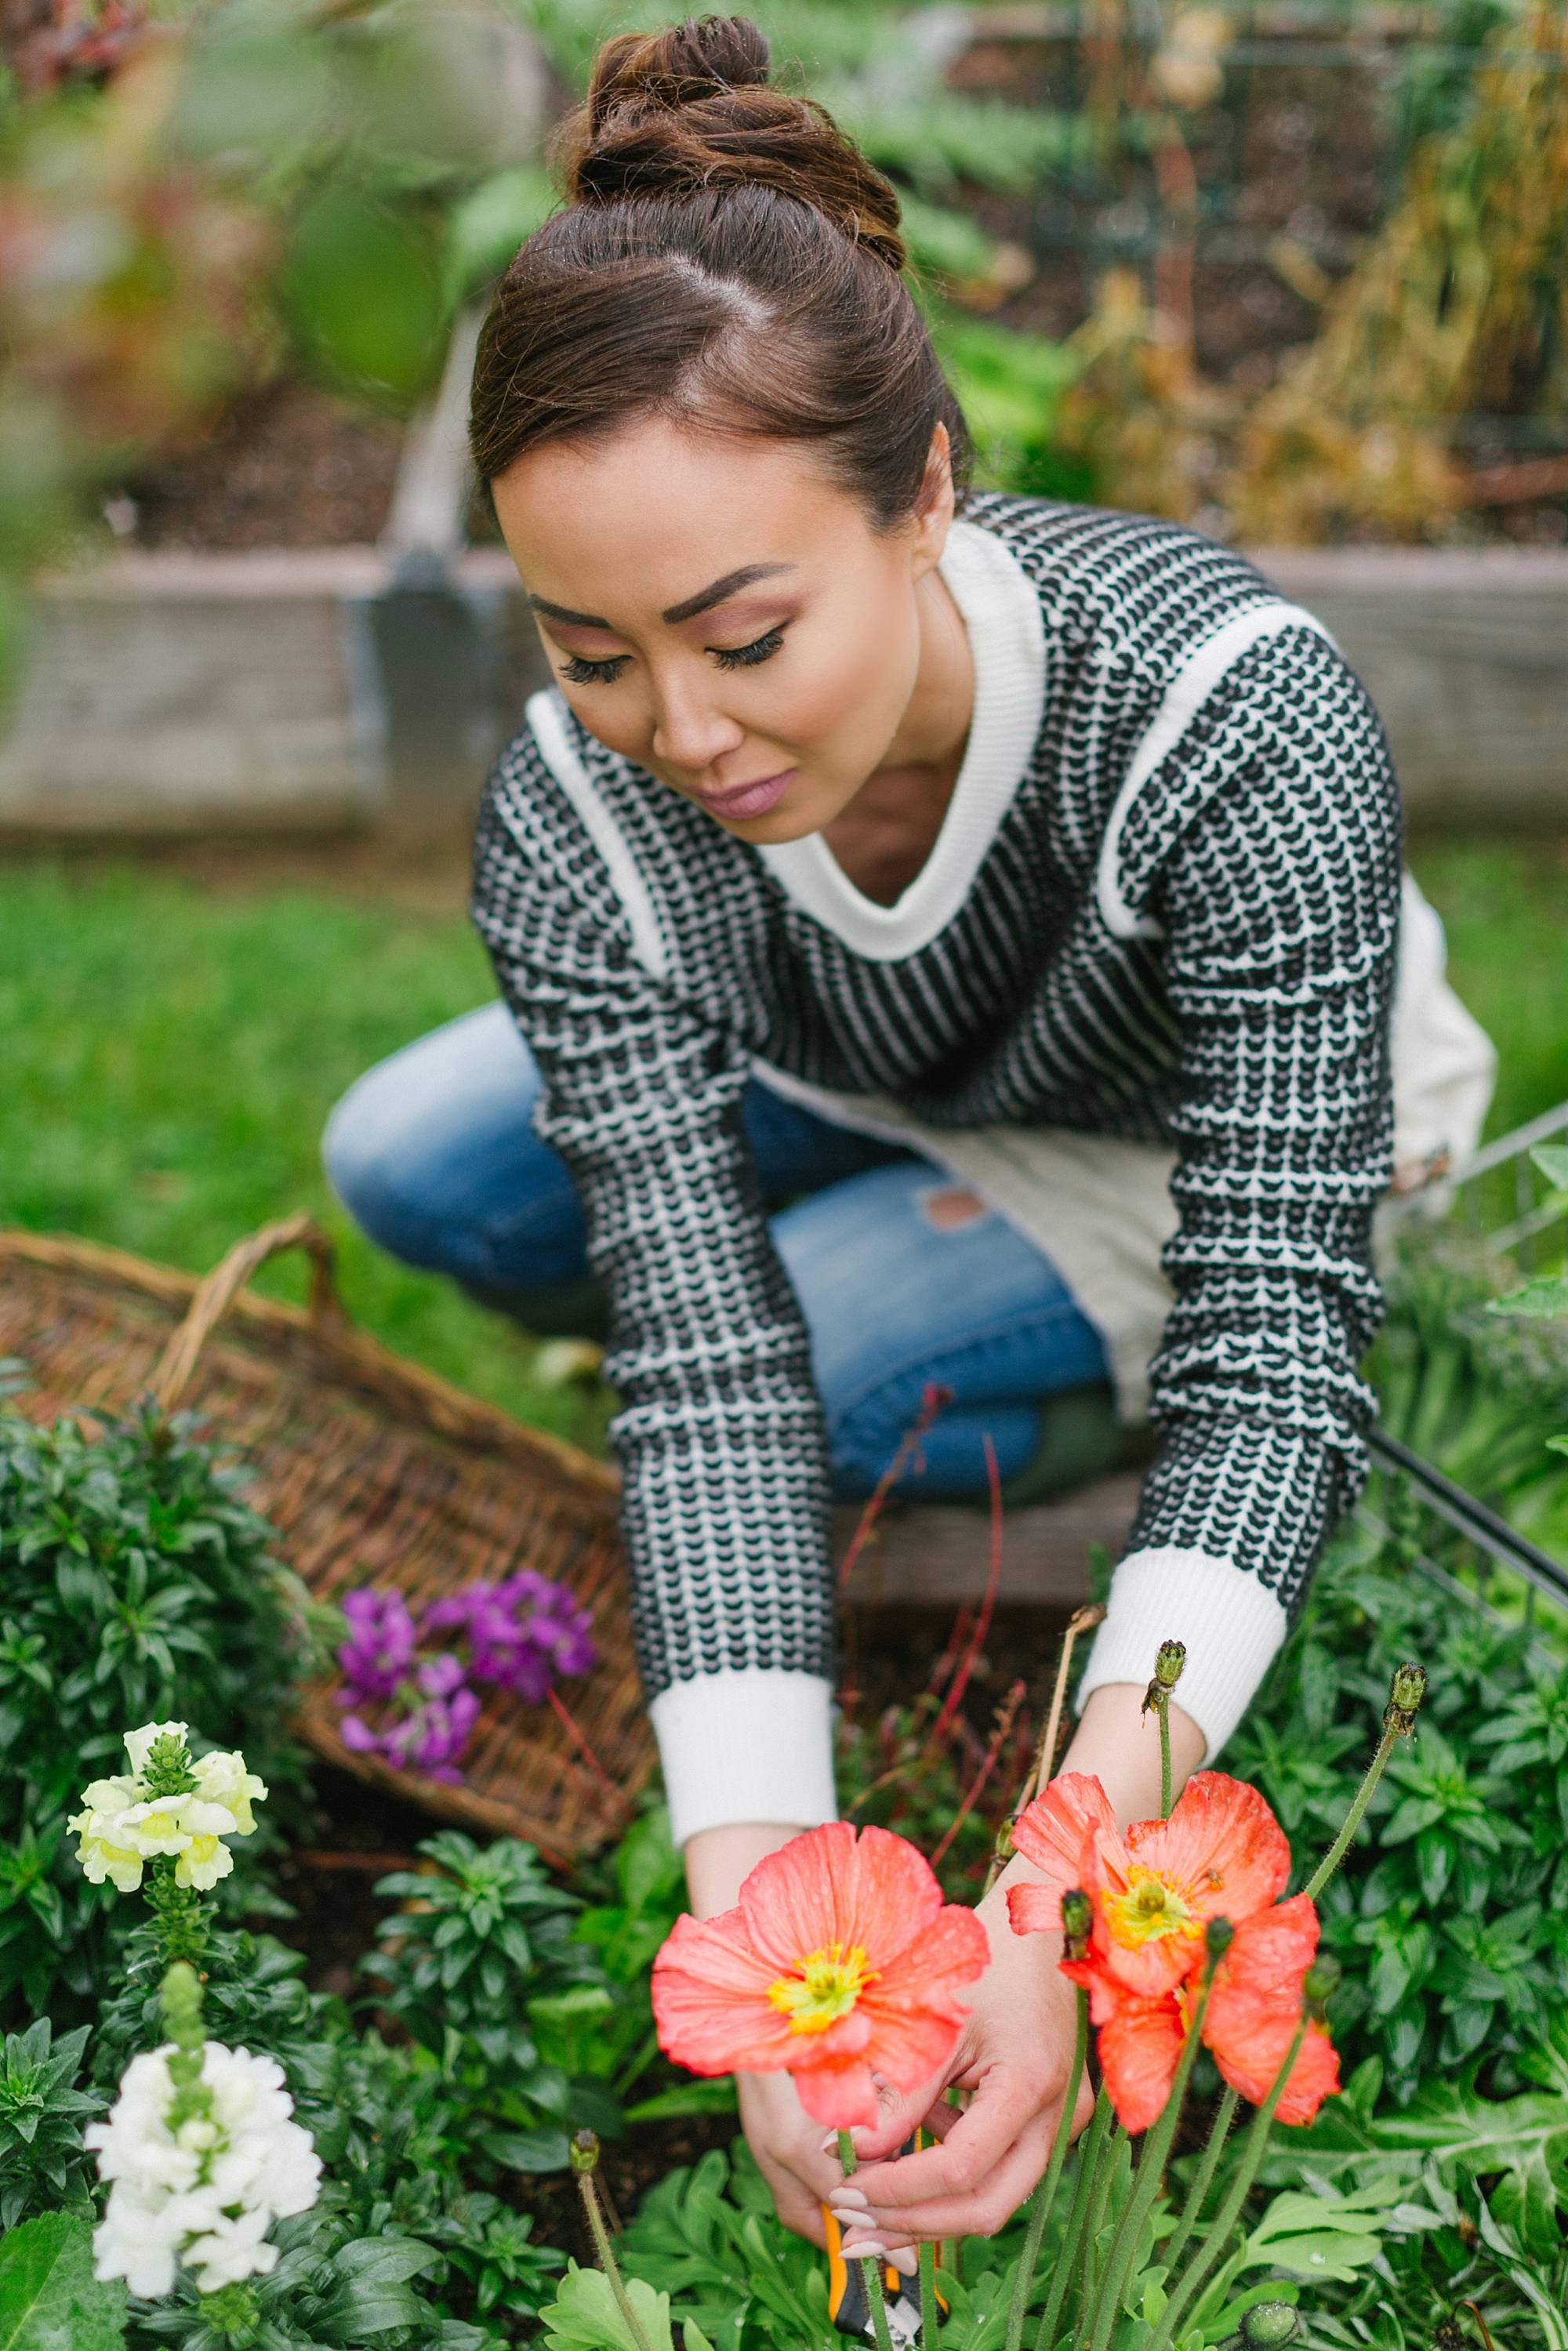 trimming poppy flowers in raised garden beds lifestyle garden blogger Diana Elizabeth #garden #gardenbeds